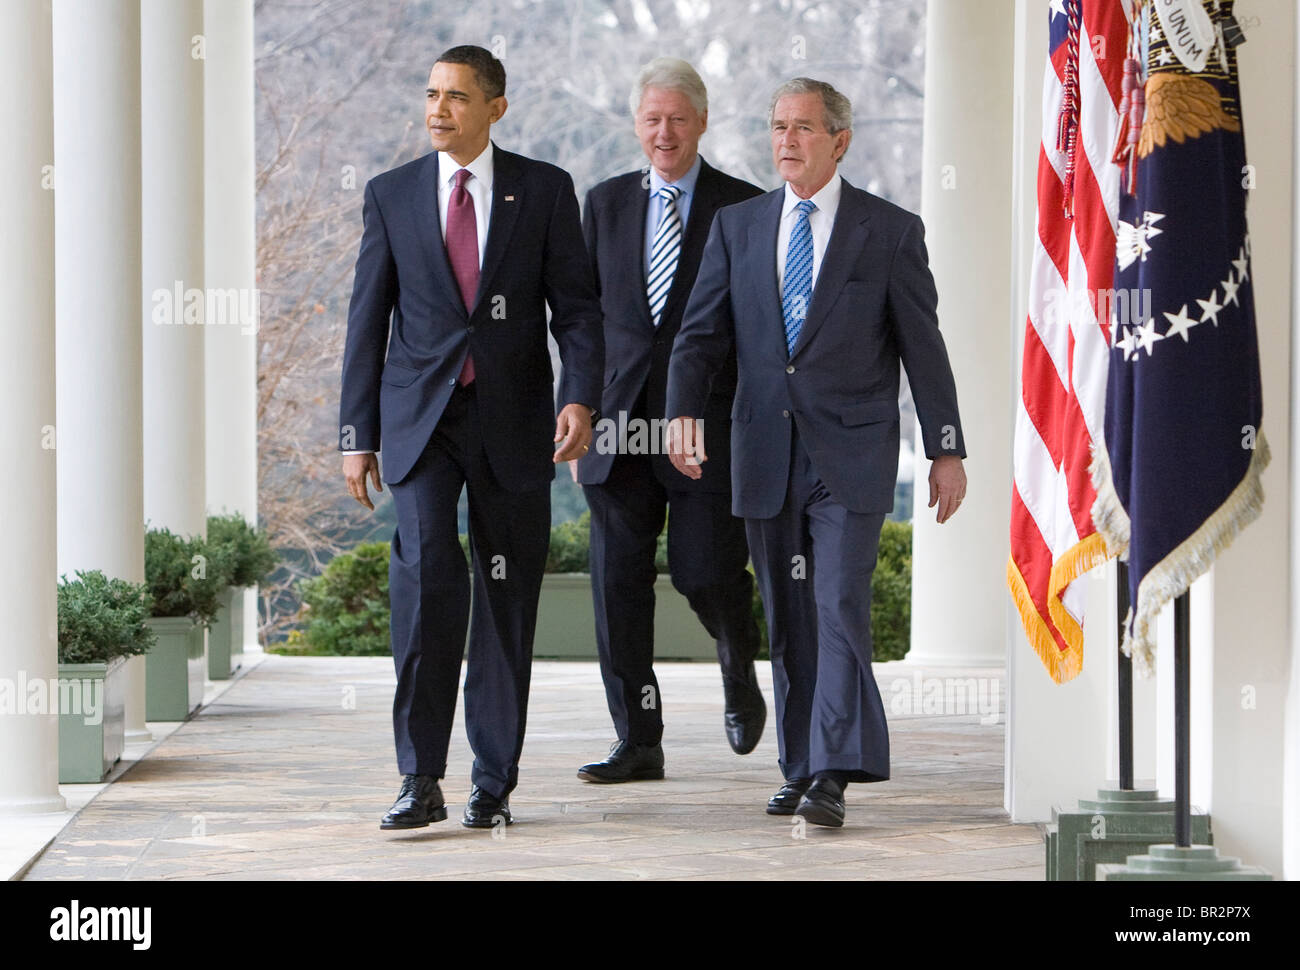 President Barack Obama with former Presidents George W. Bush and Bill Clinton.  Stock Photo